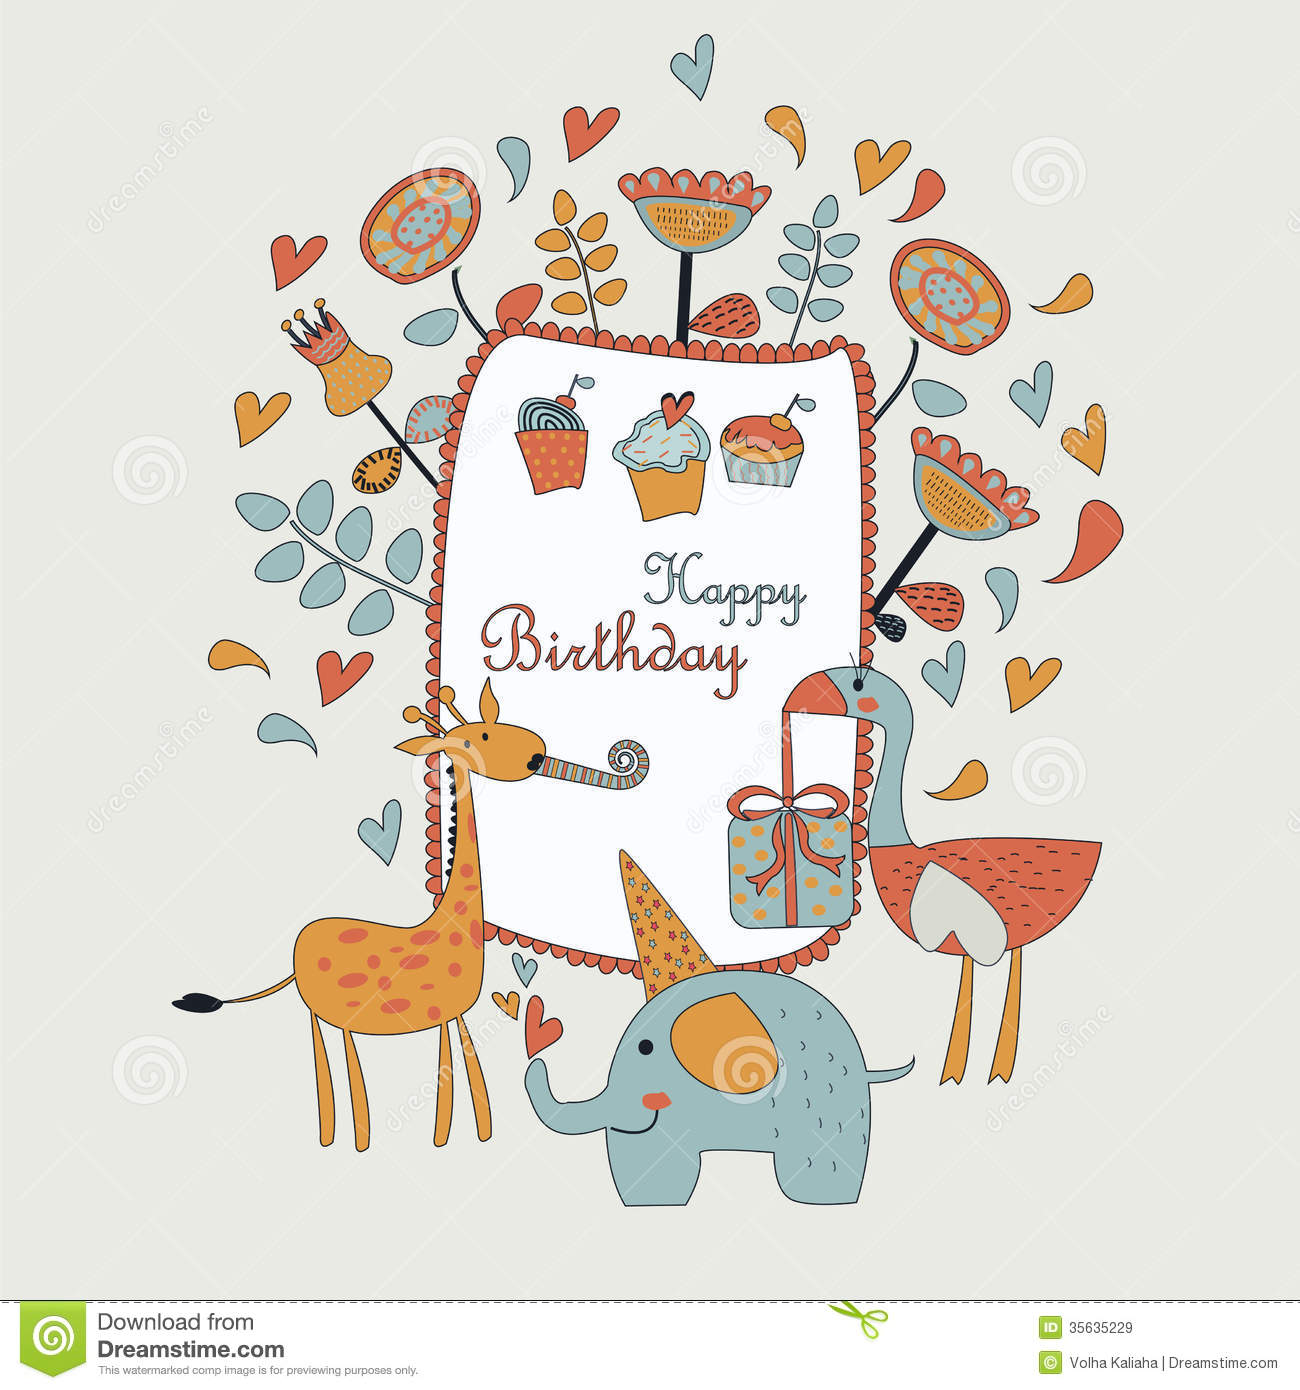 animated birthday pictures clip art ; cute-animated-birthday-clipart-1